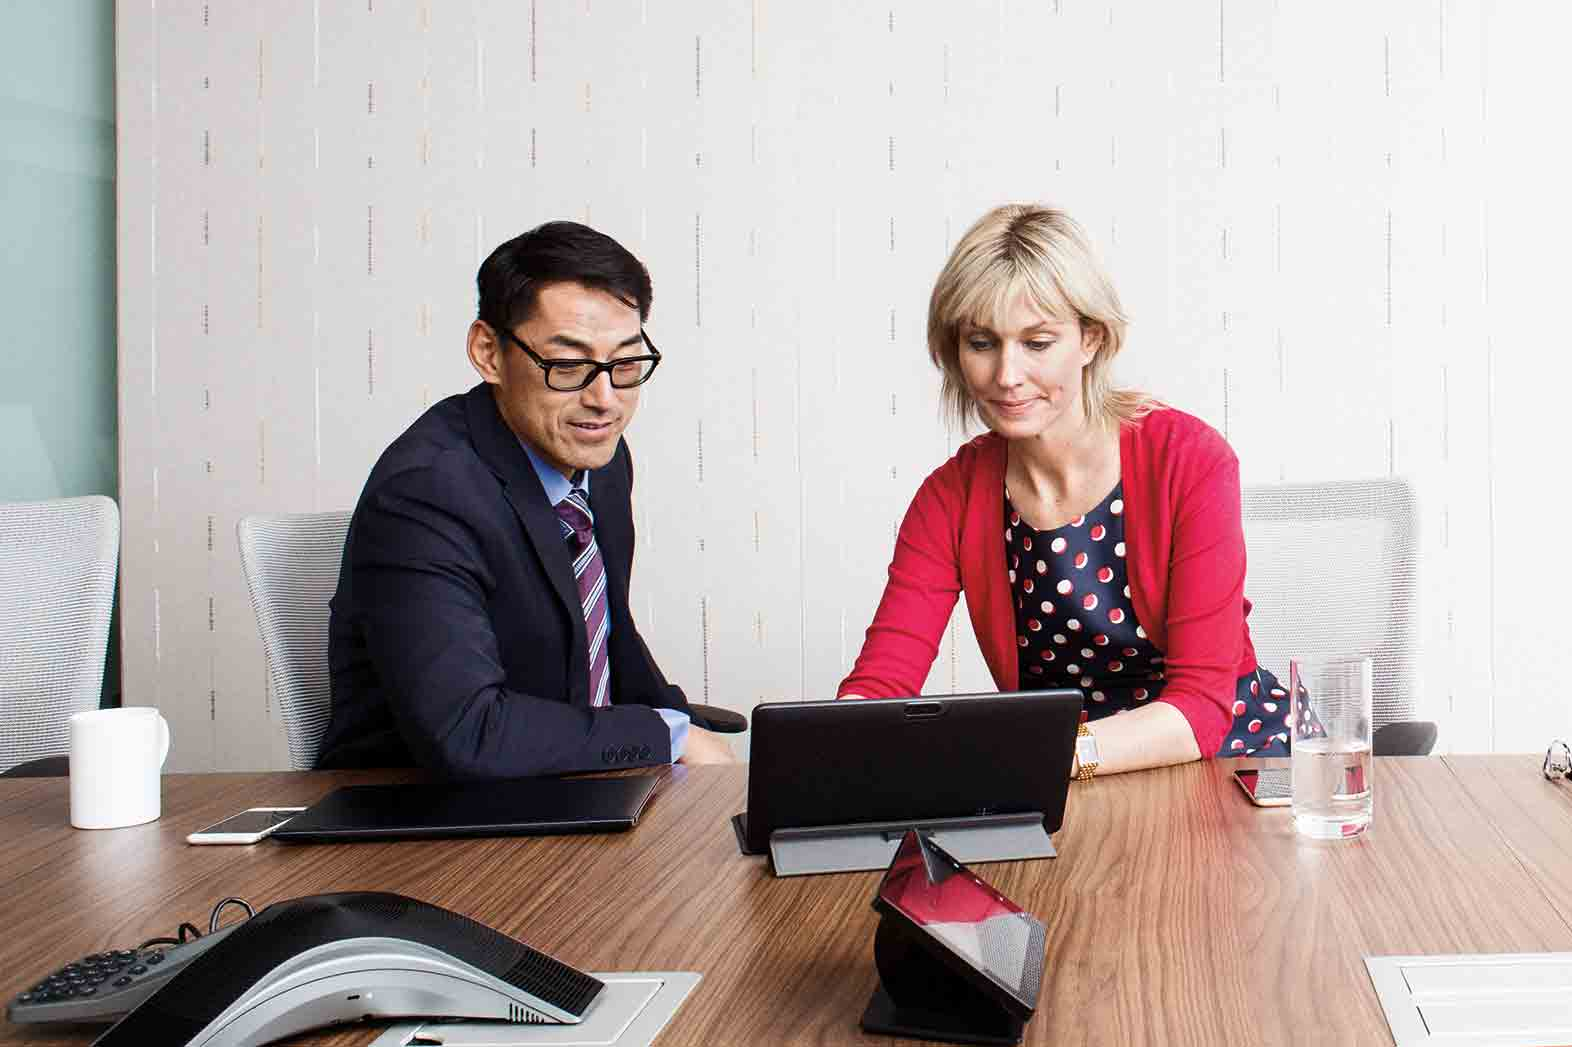 Two employees meet in a conference room and discuss their new surface tablets